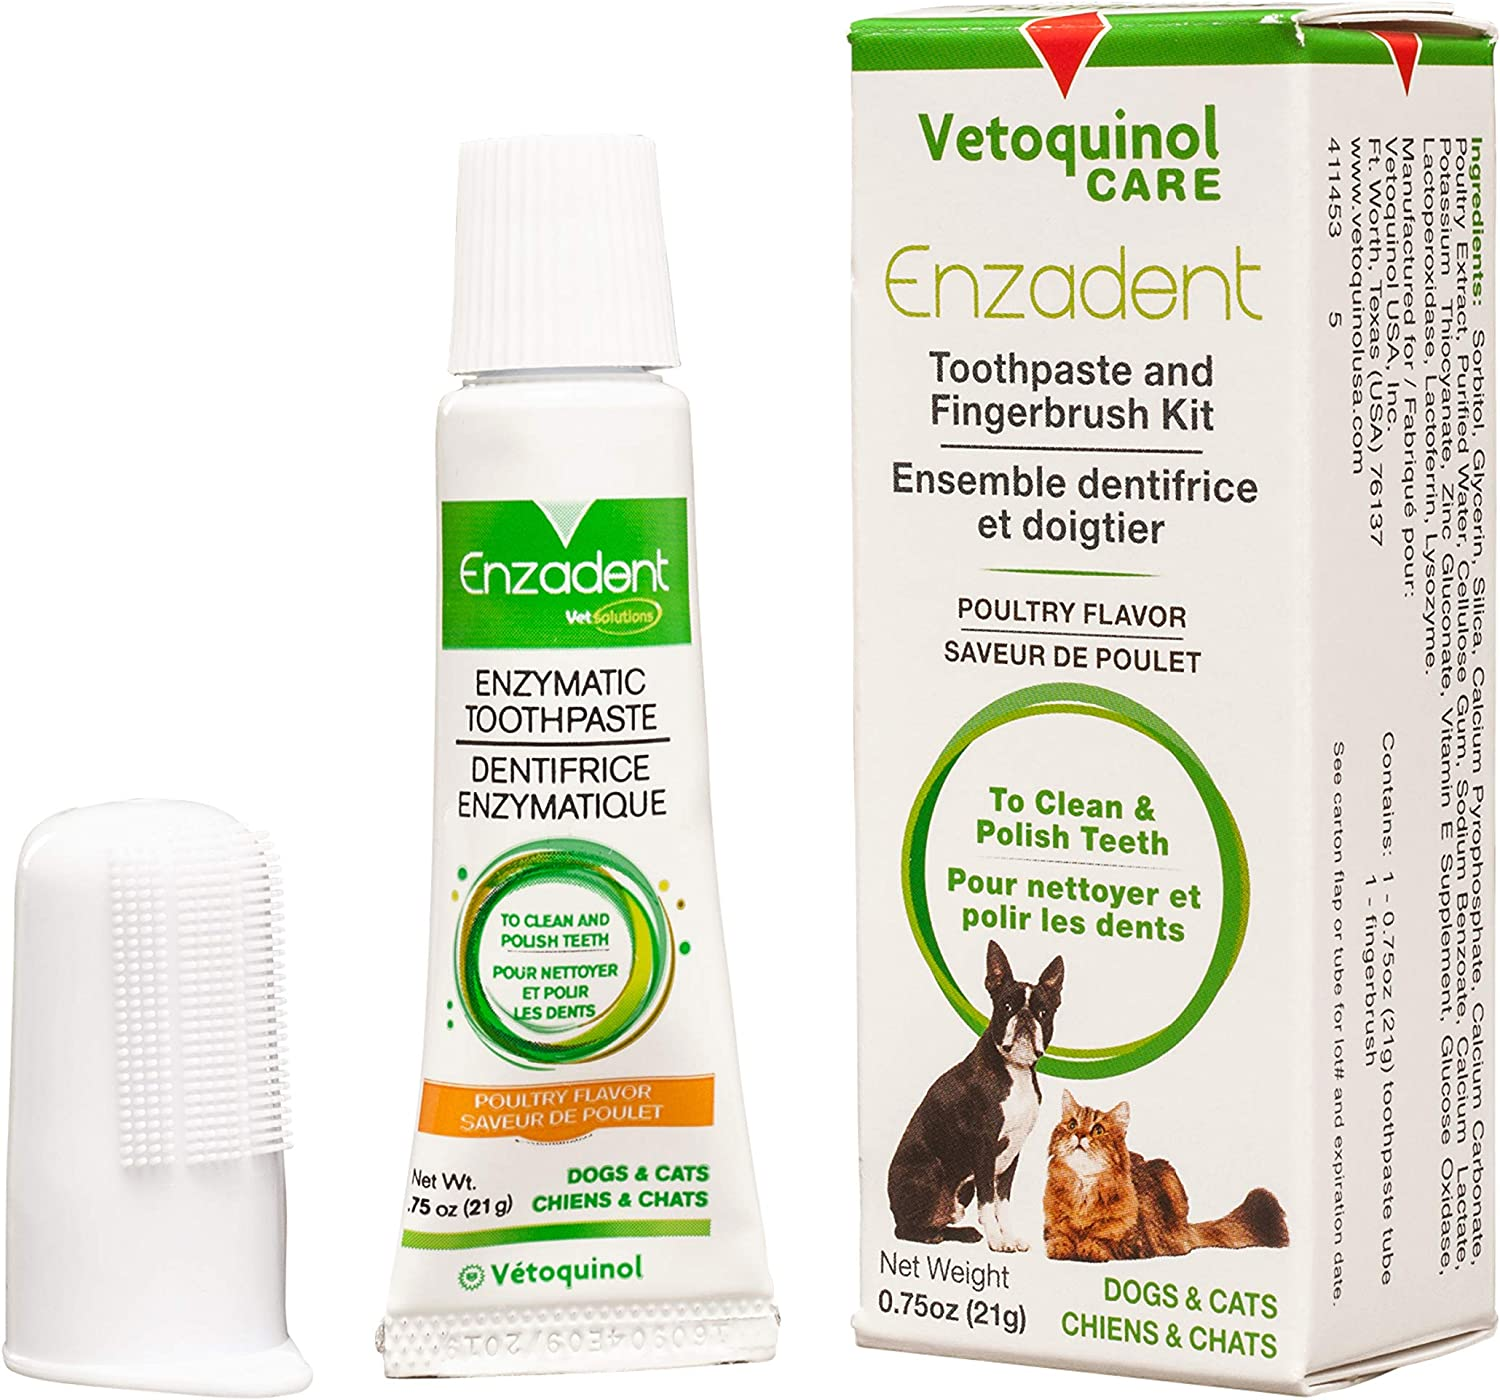 vetoquinol best overall toothpaste for cats